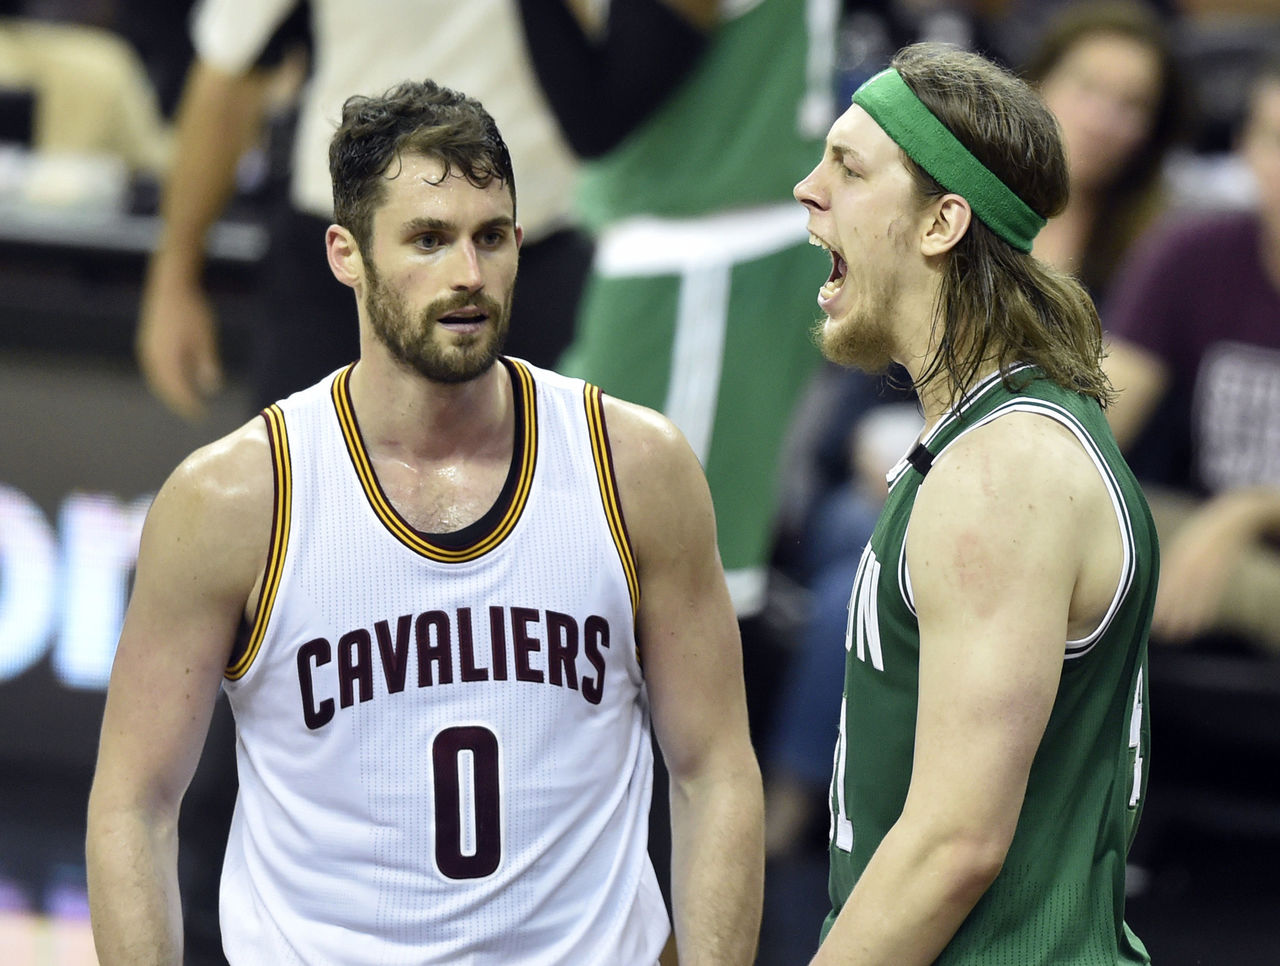 Cropped 2017 05 24t031409z 1352700309 nocid rtrmadp 3 nba playoffs boston celtics at cleveland cavaliers